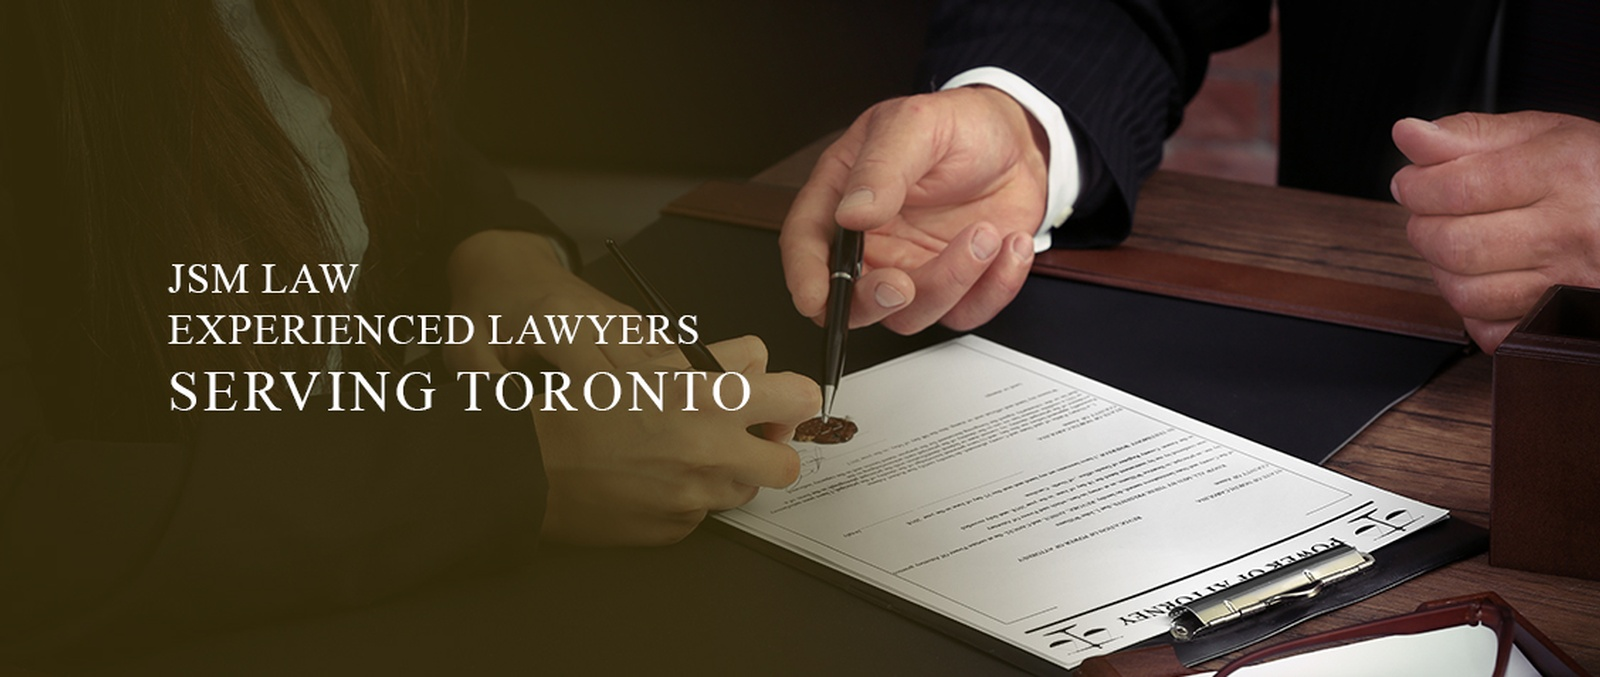 CORPORATE, CRIMINAL AND PERSONAL INJURY LAWYERS TORONTO ON